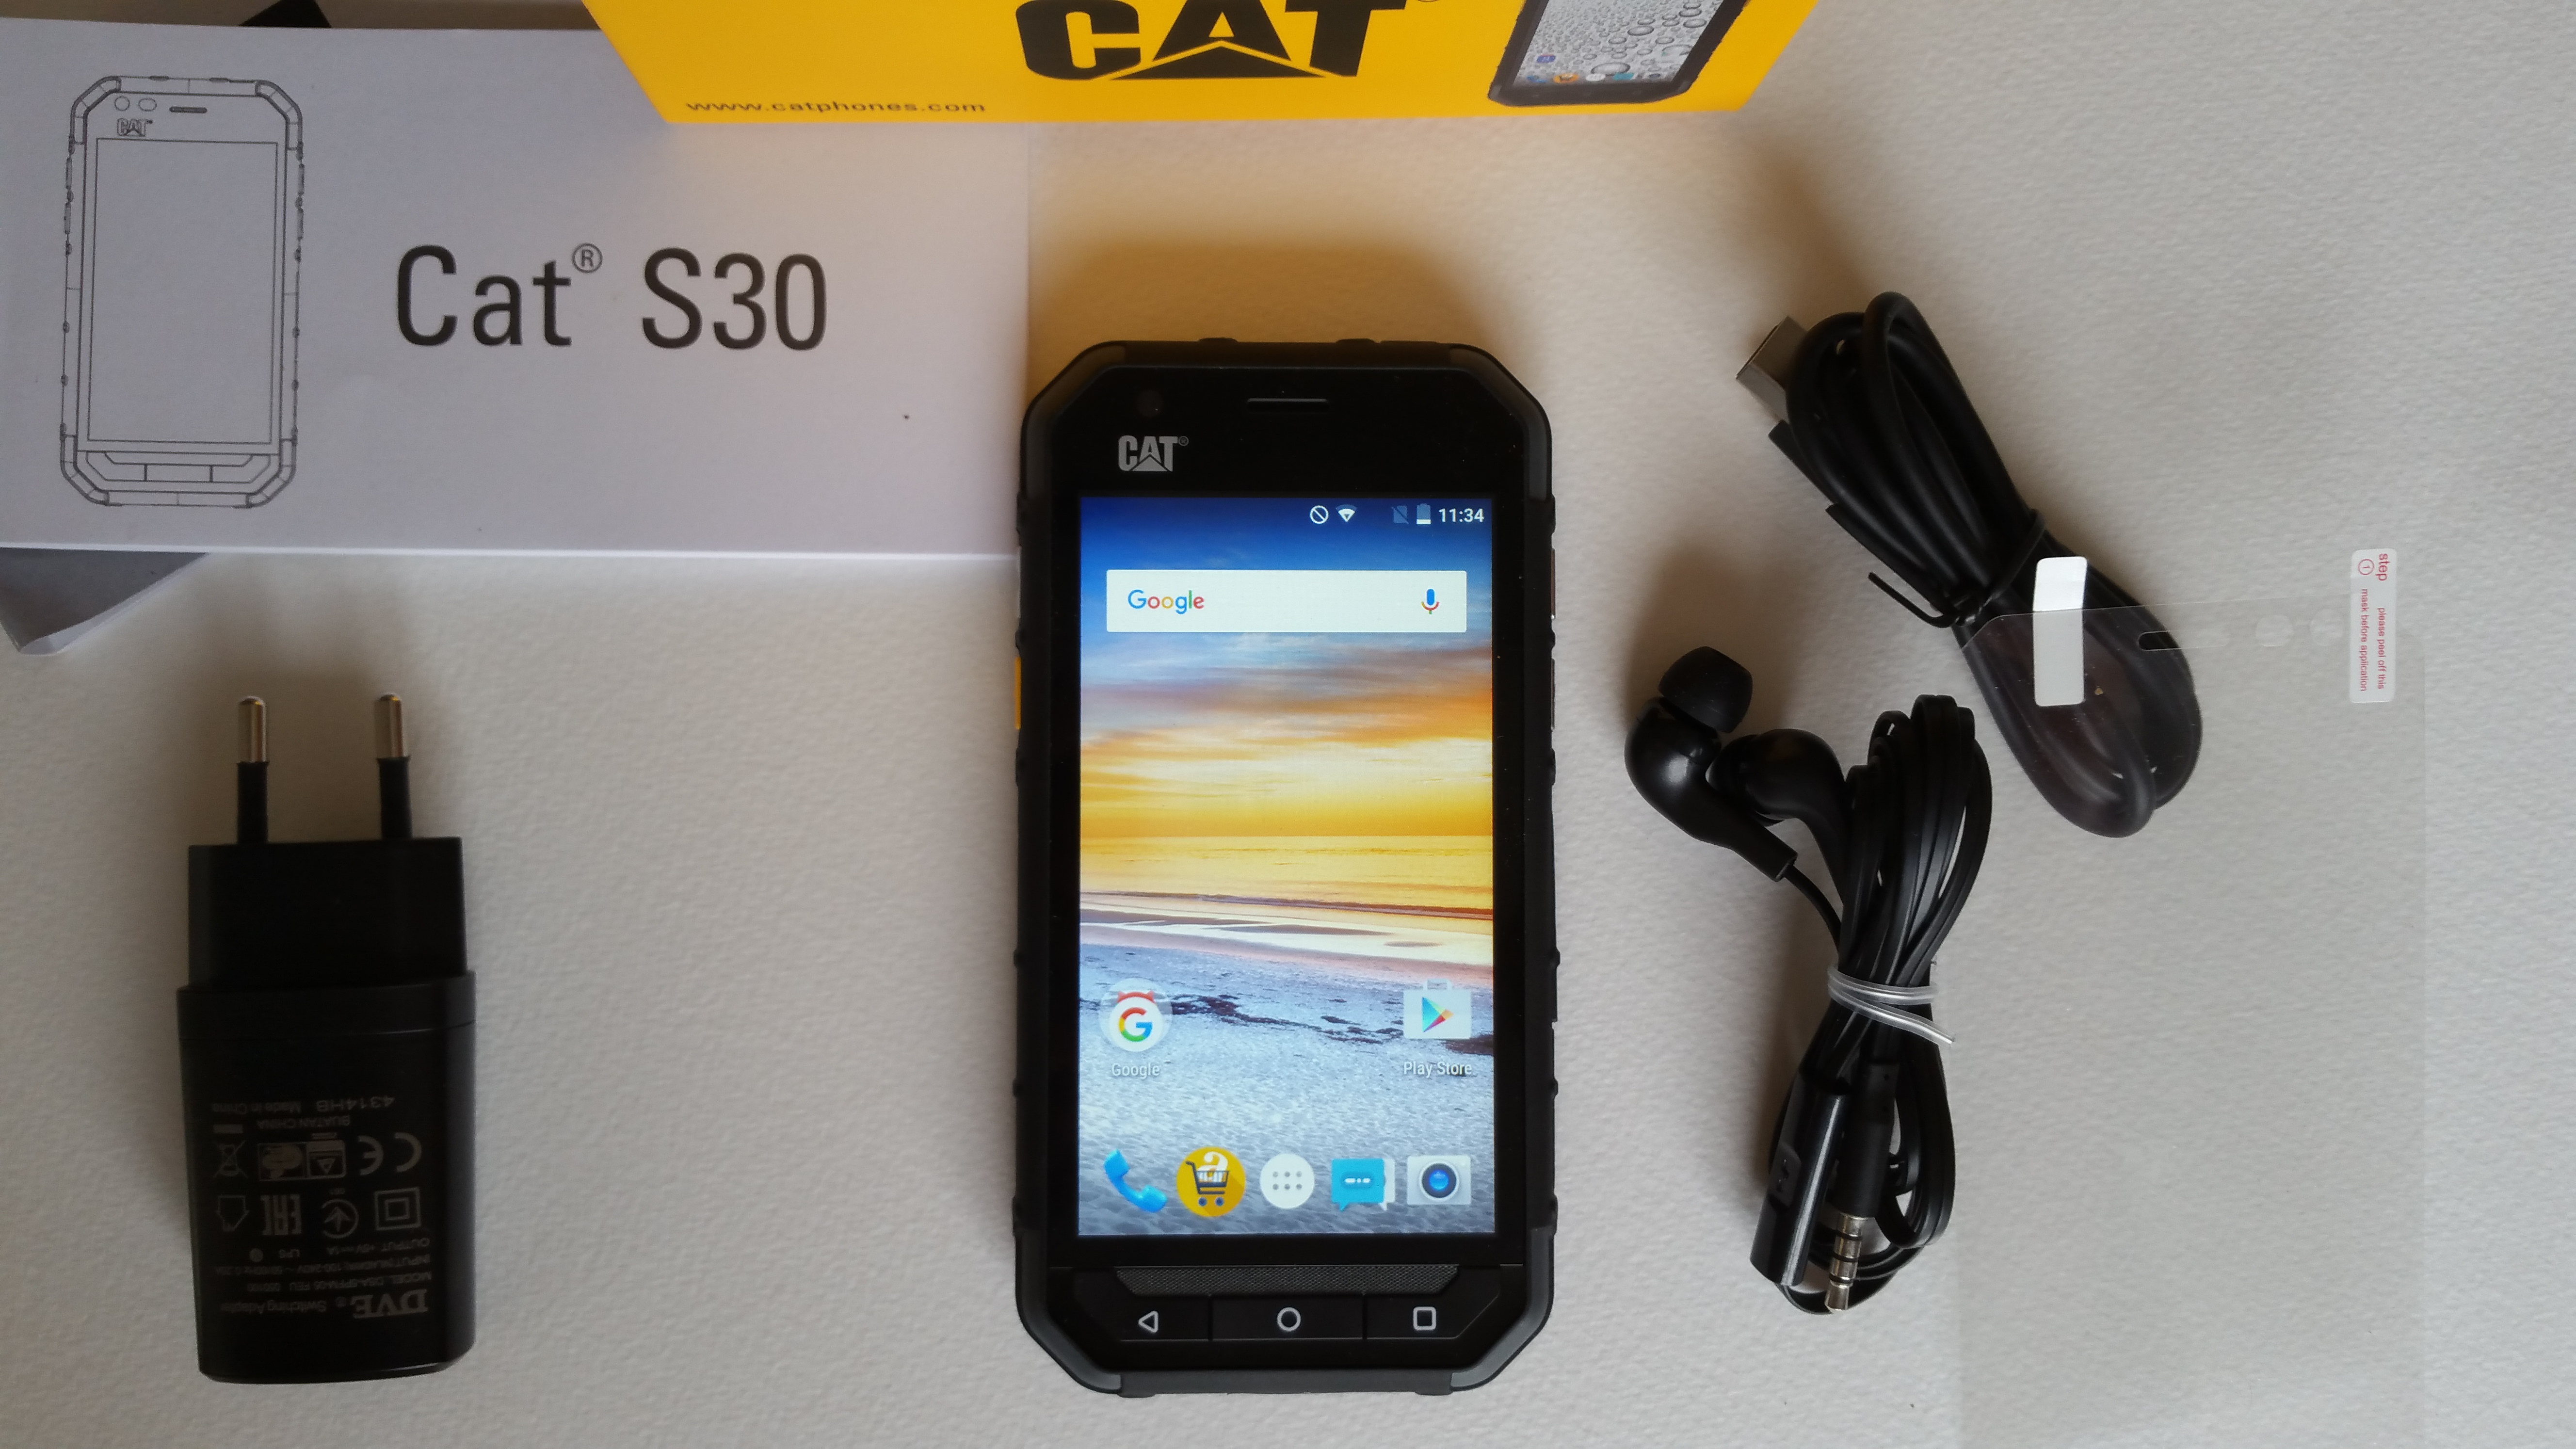 test cat s30 le smartphone de chantier de caterpillar. Black Bedroom Furniture Sets. Home Design Ideas